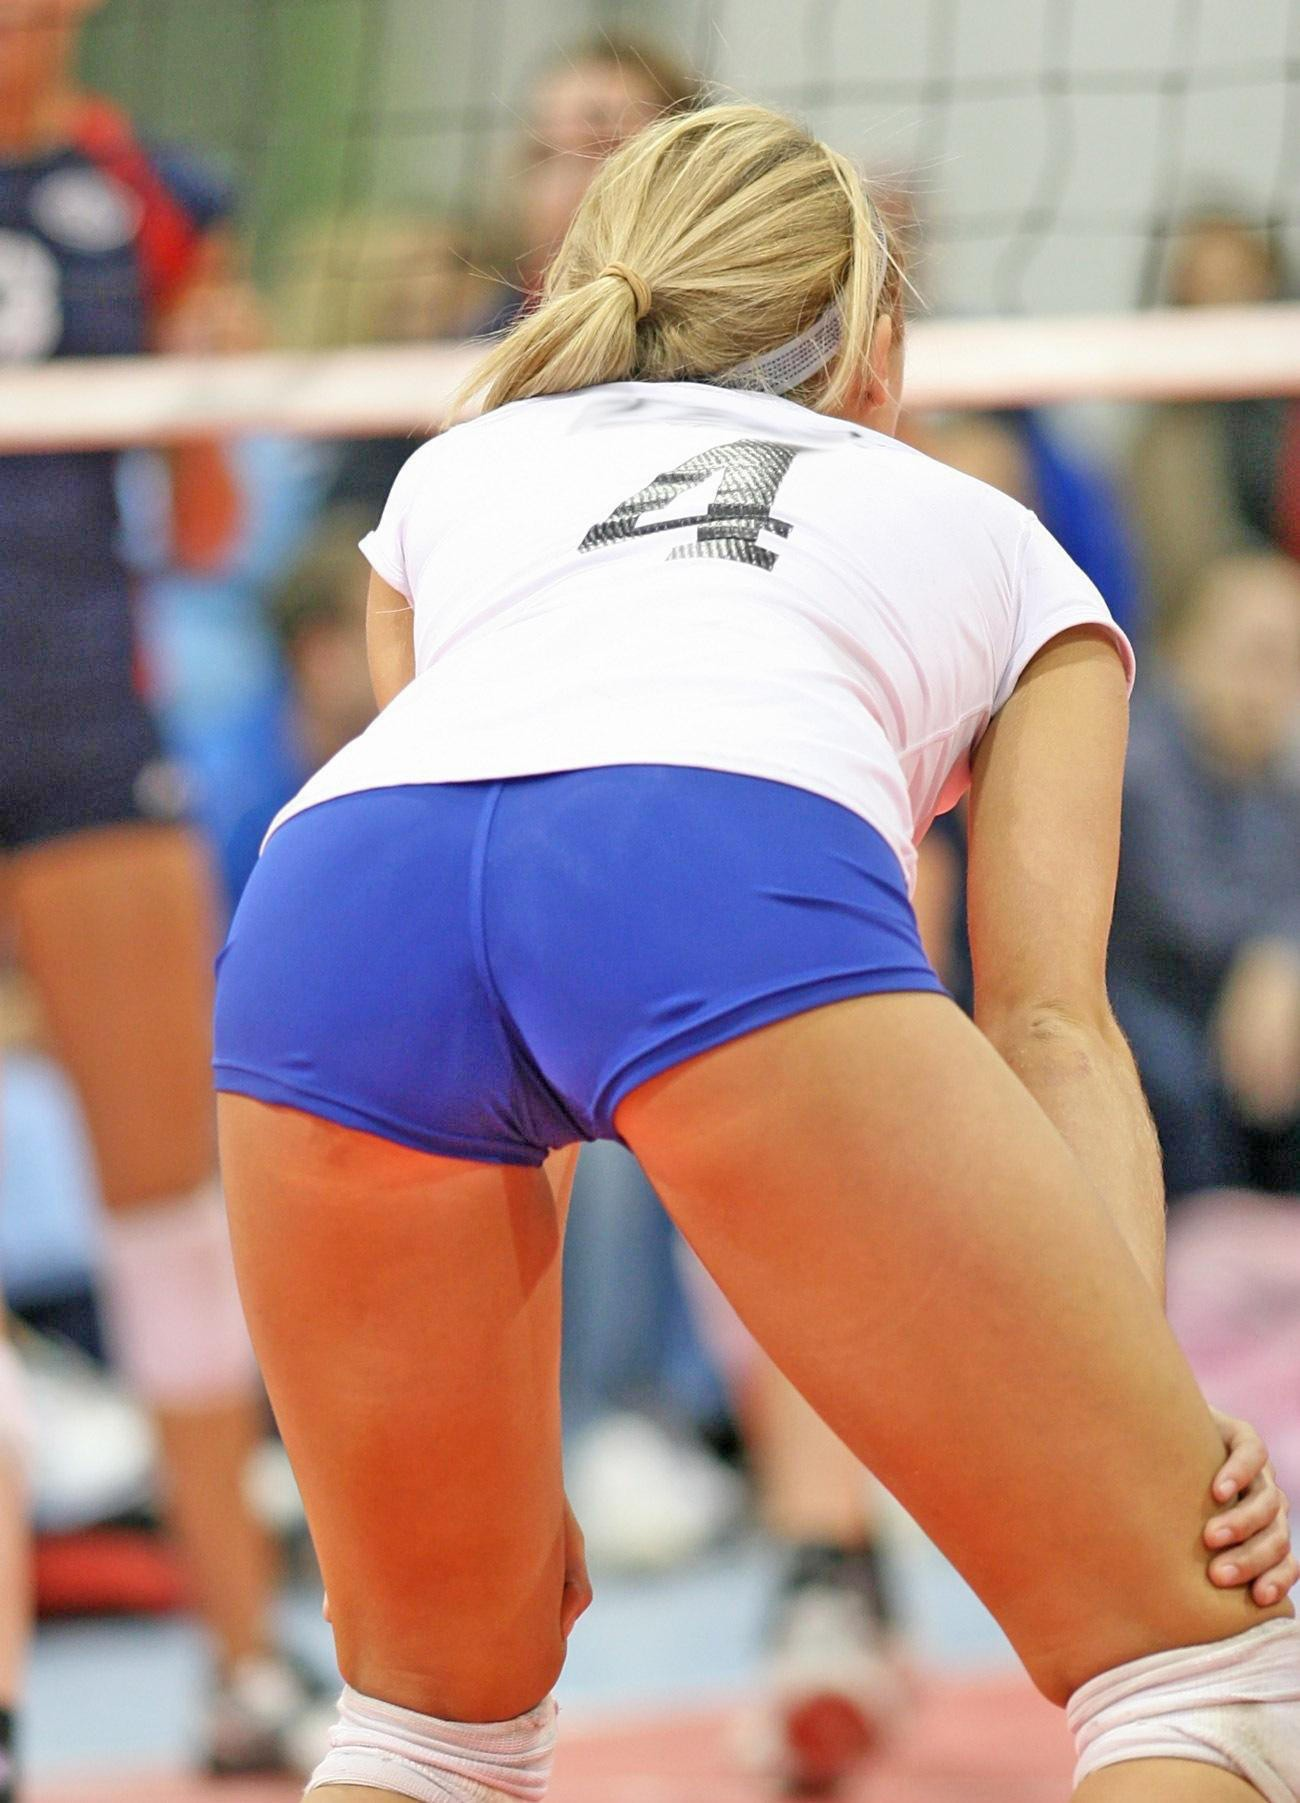 cameltoe in volleyball